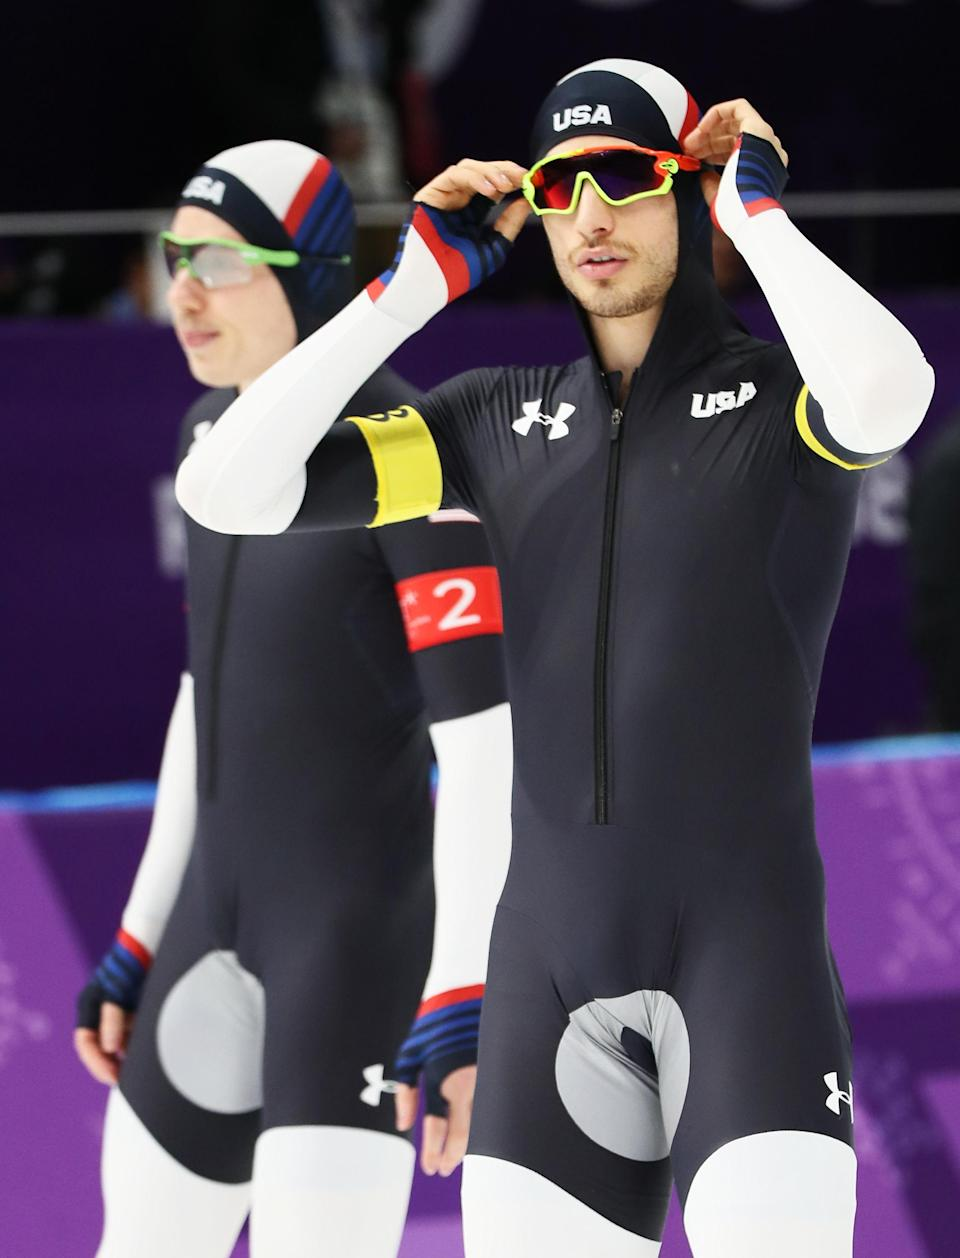 GANGNEUNG, SOUTH KOREA – FEBRUARY 18: Emery Lehman and Jonathan Garcia of the United States warm up prior to the Men's Team Pursuit Speed Skating Quarter Finals on day nine of the PyeongChang 2018 Winter Olympic Games. (Getty Images)